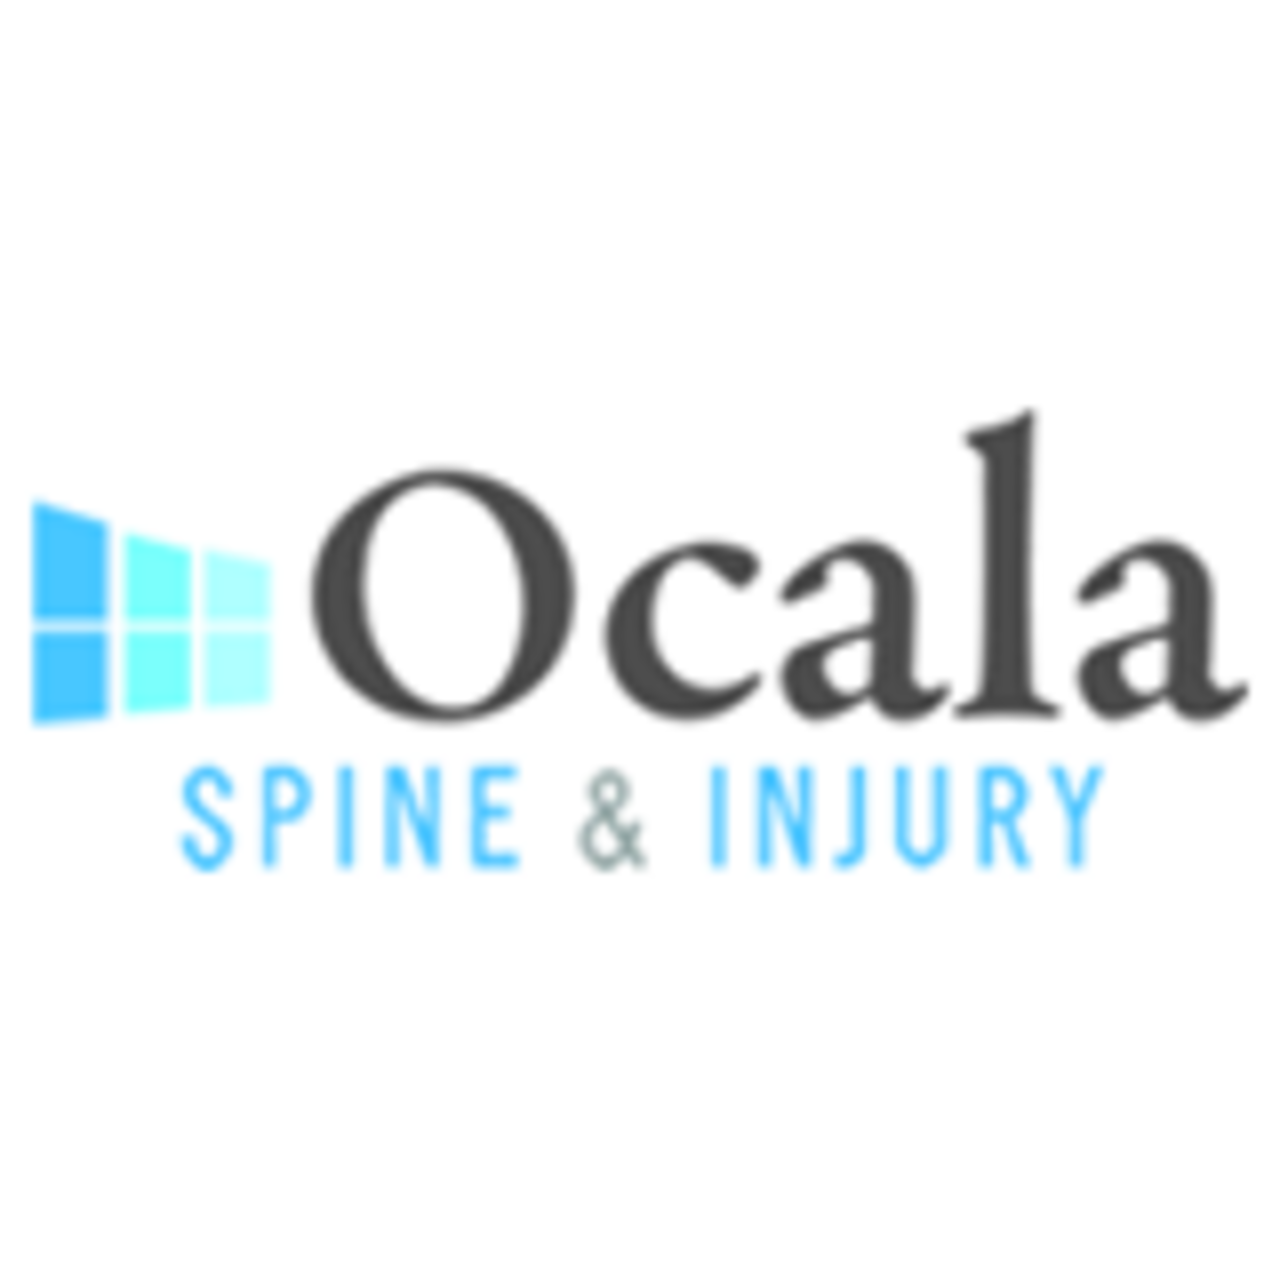 Ocala Spine & Injury - Medical - Health Care Facilities in Ocala FL